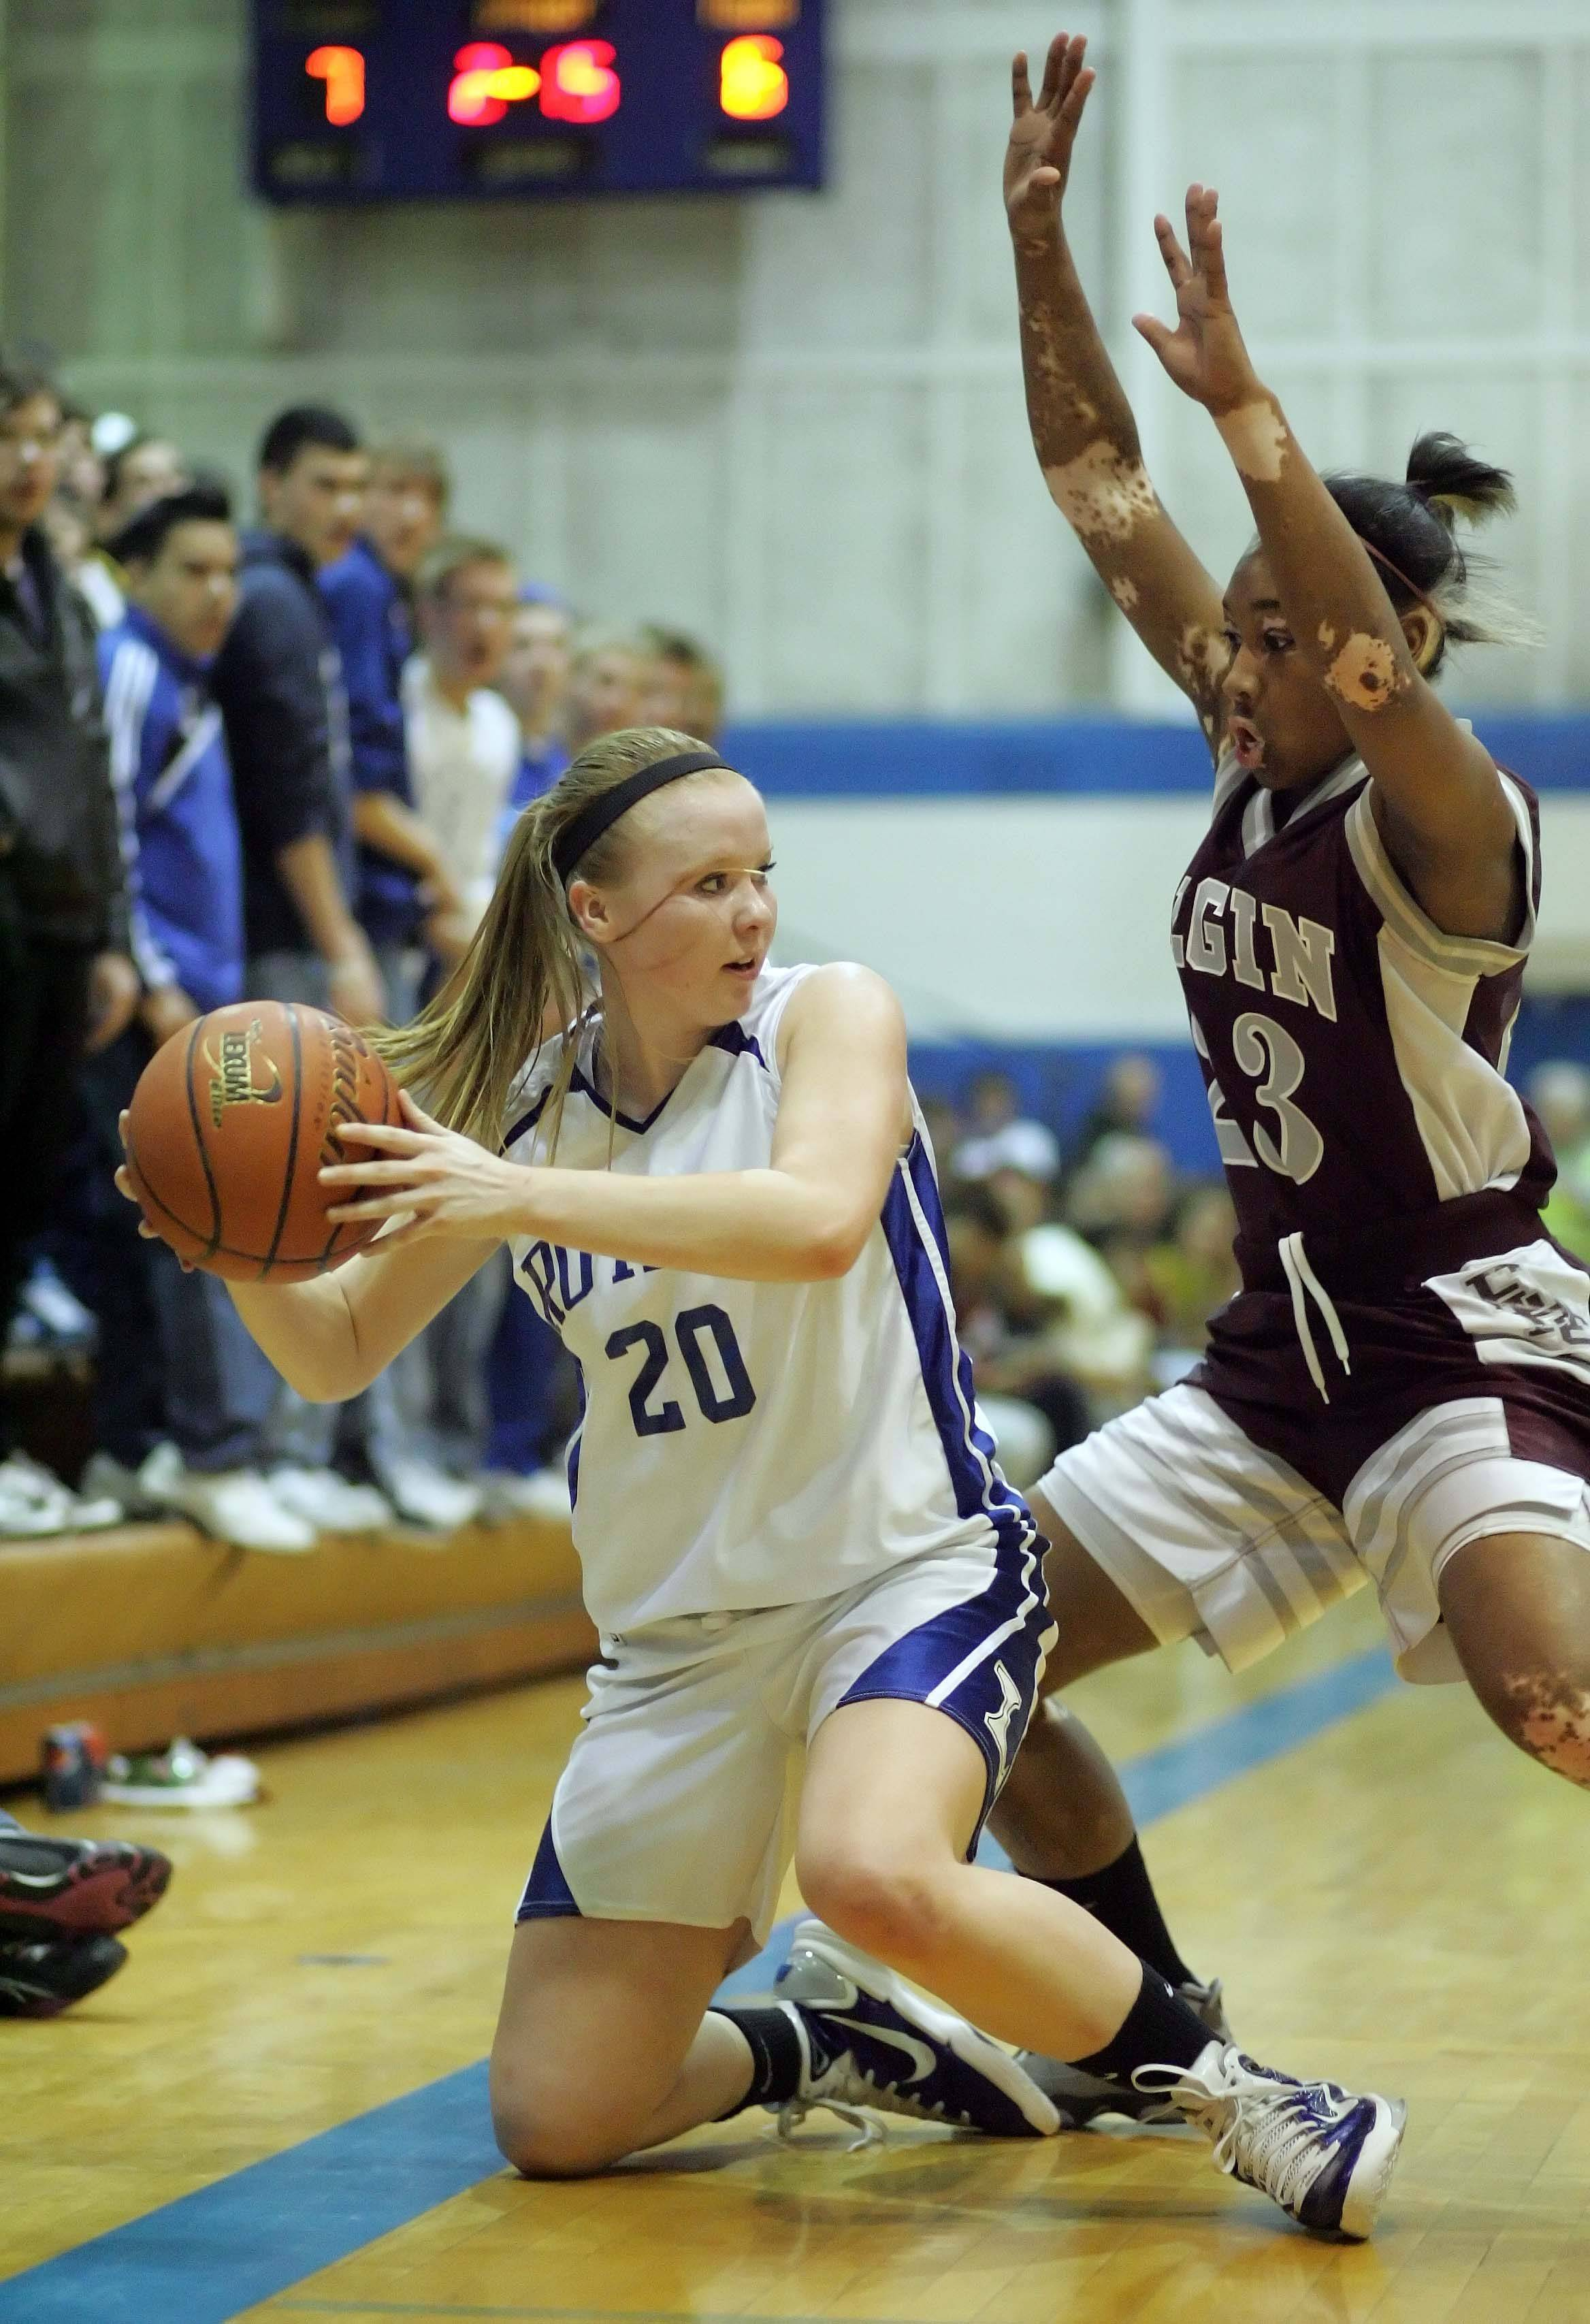 Larkin notches another win over Elgin